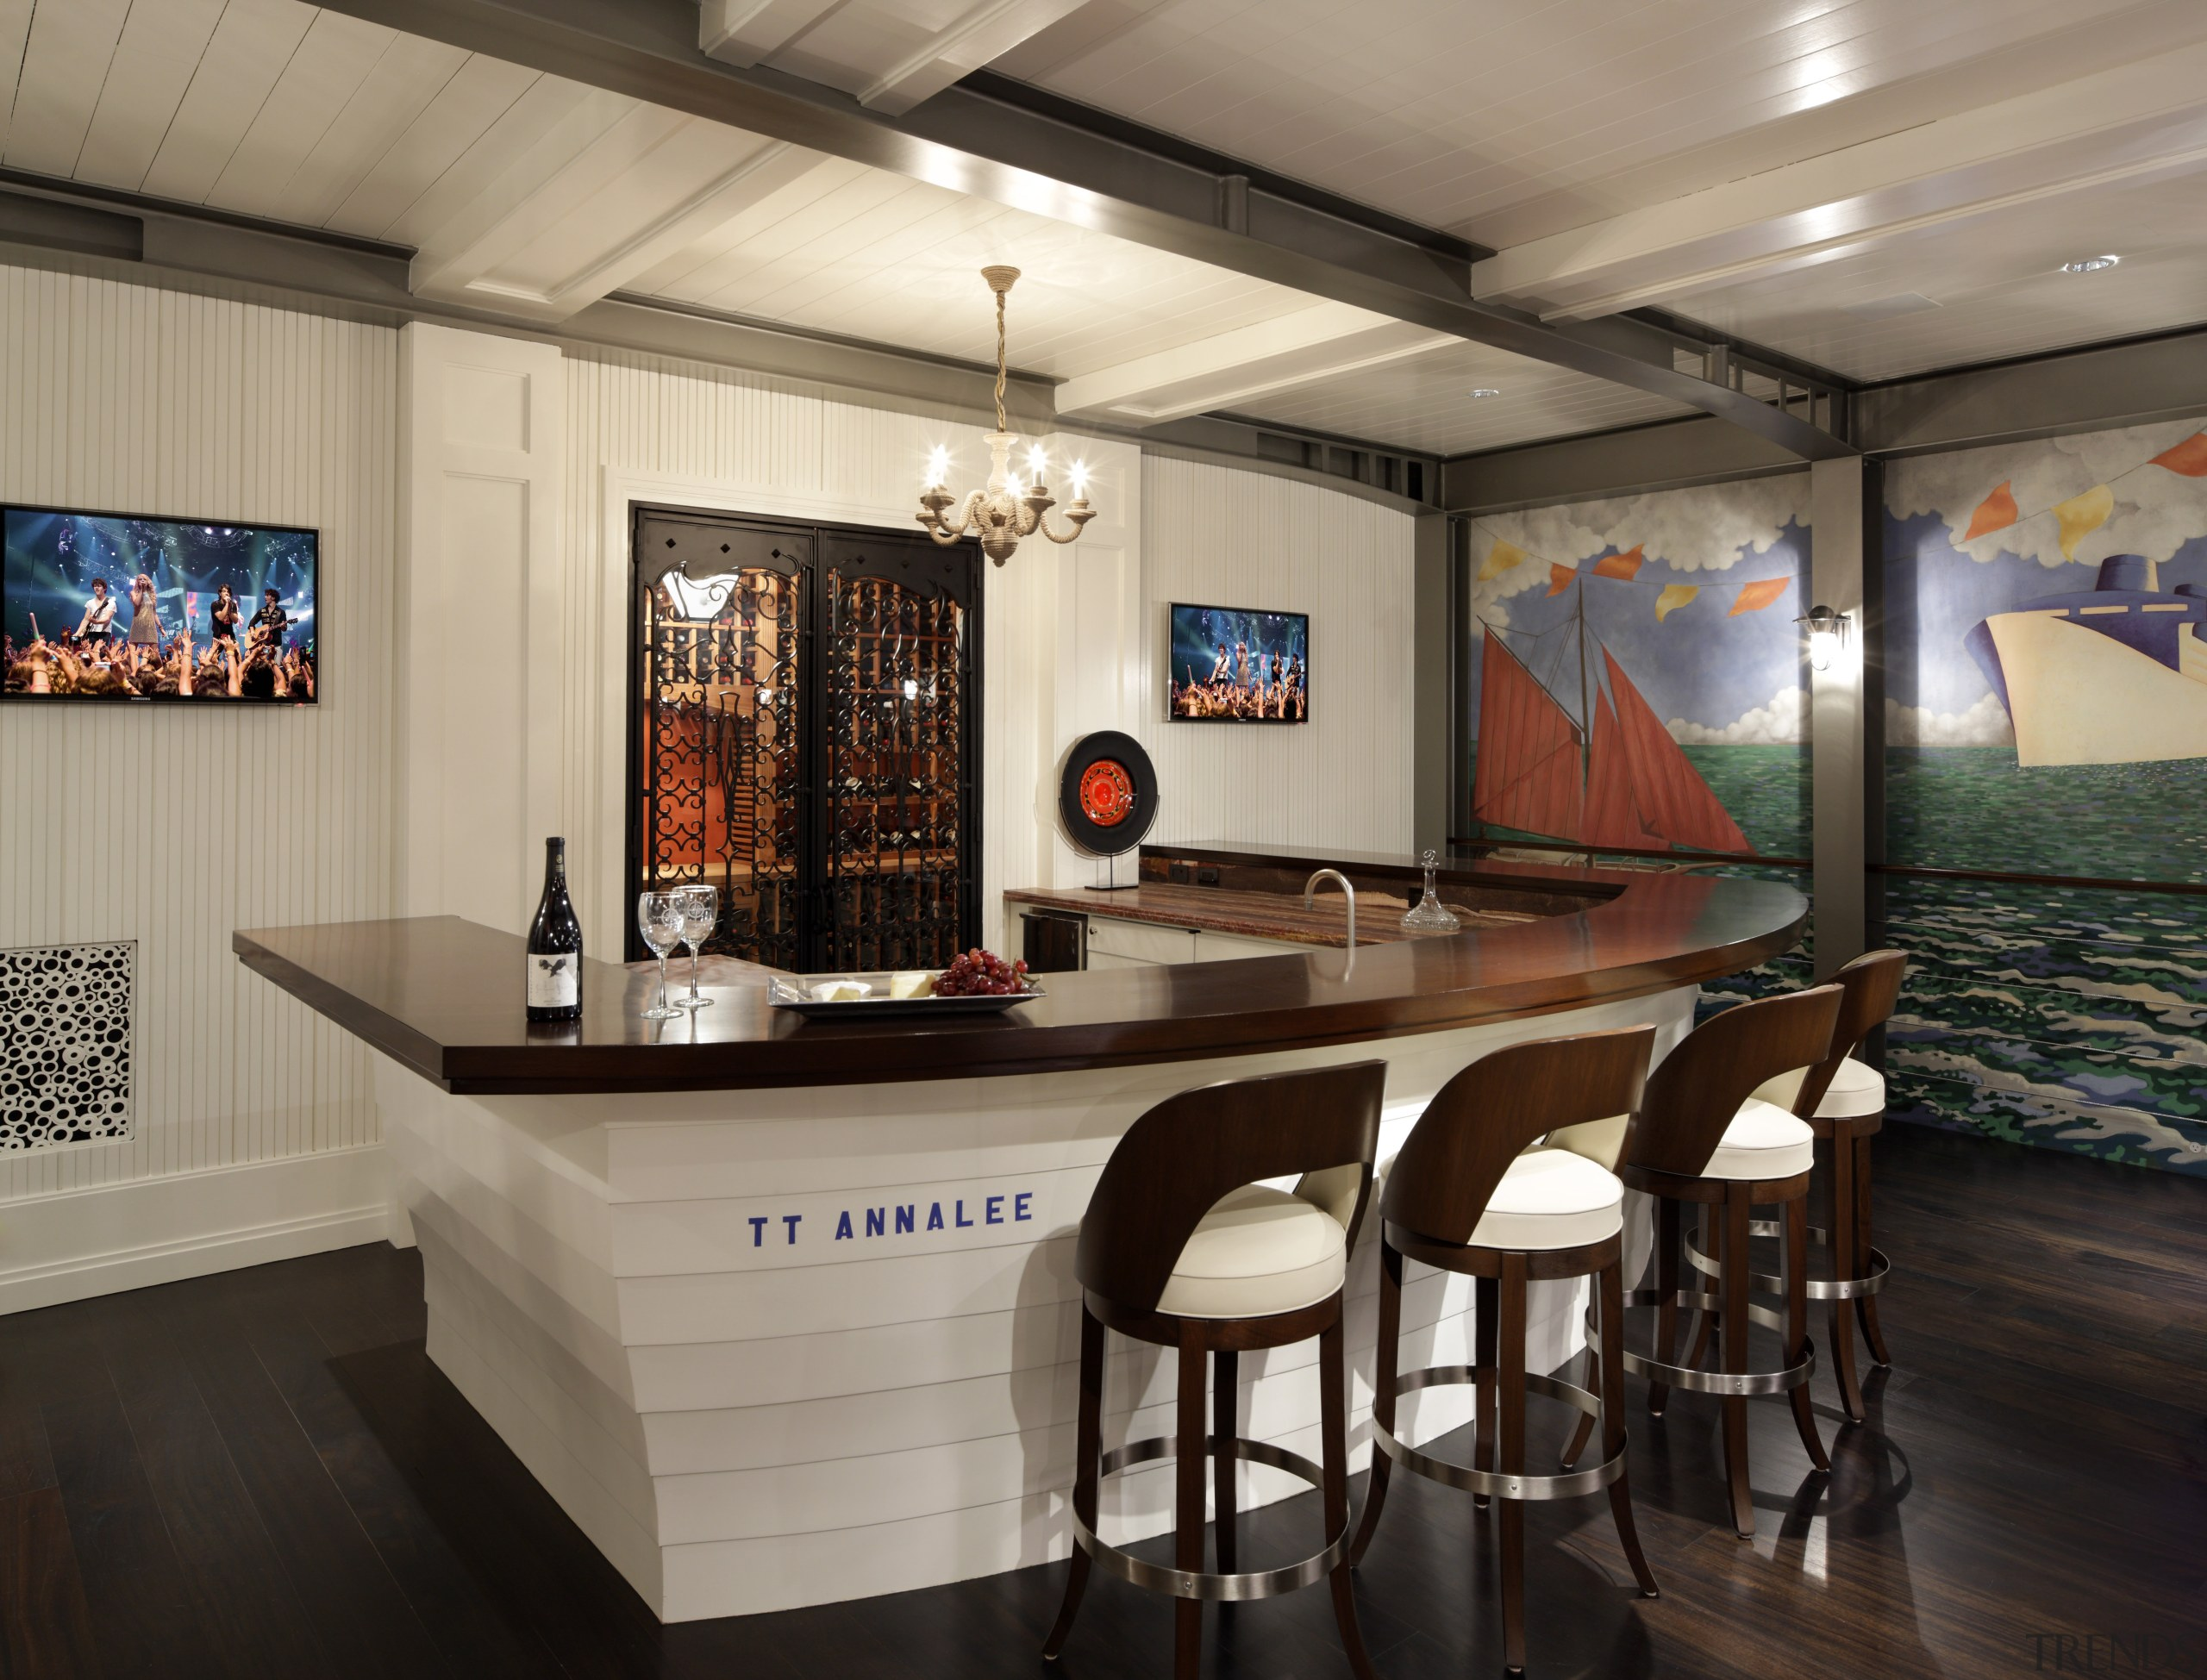 Fancy a Seabreeze or a Sundowner? This basement countertop, interior design, real estate, table, gray, black